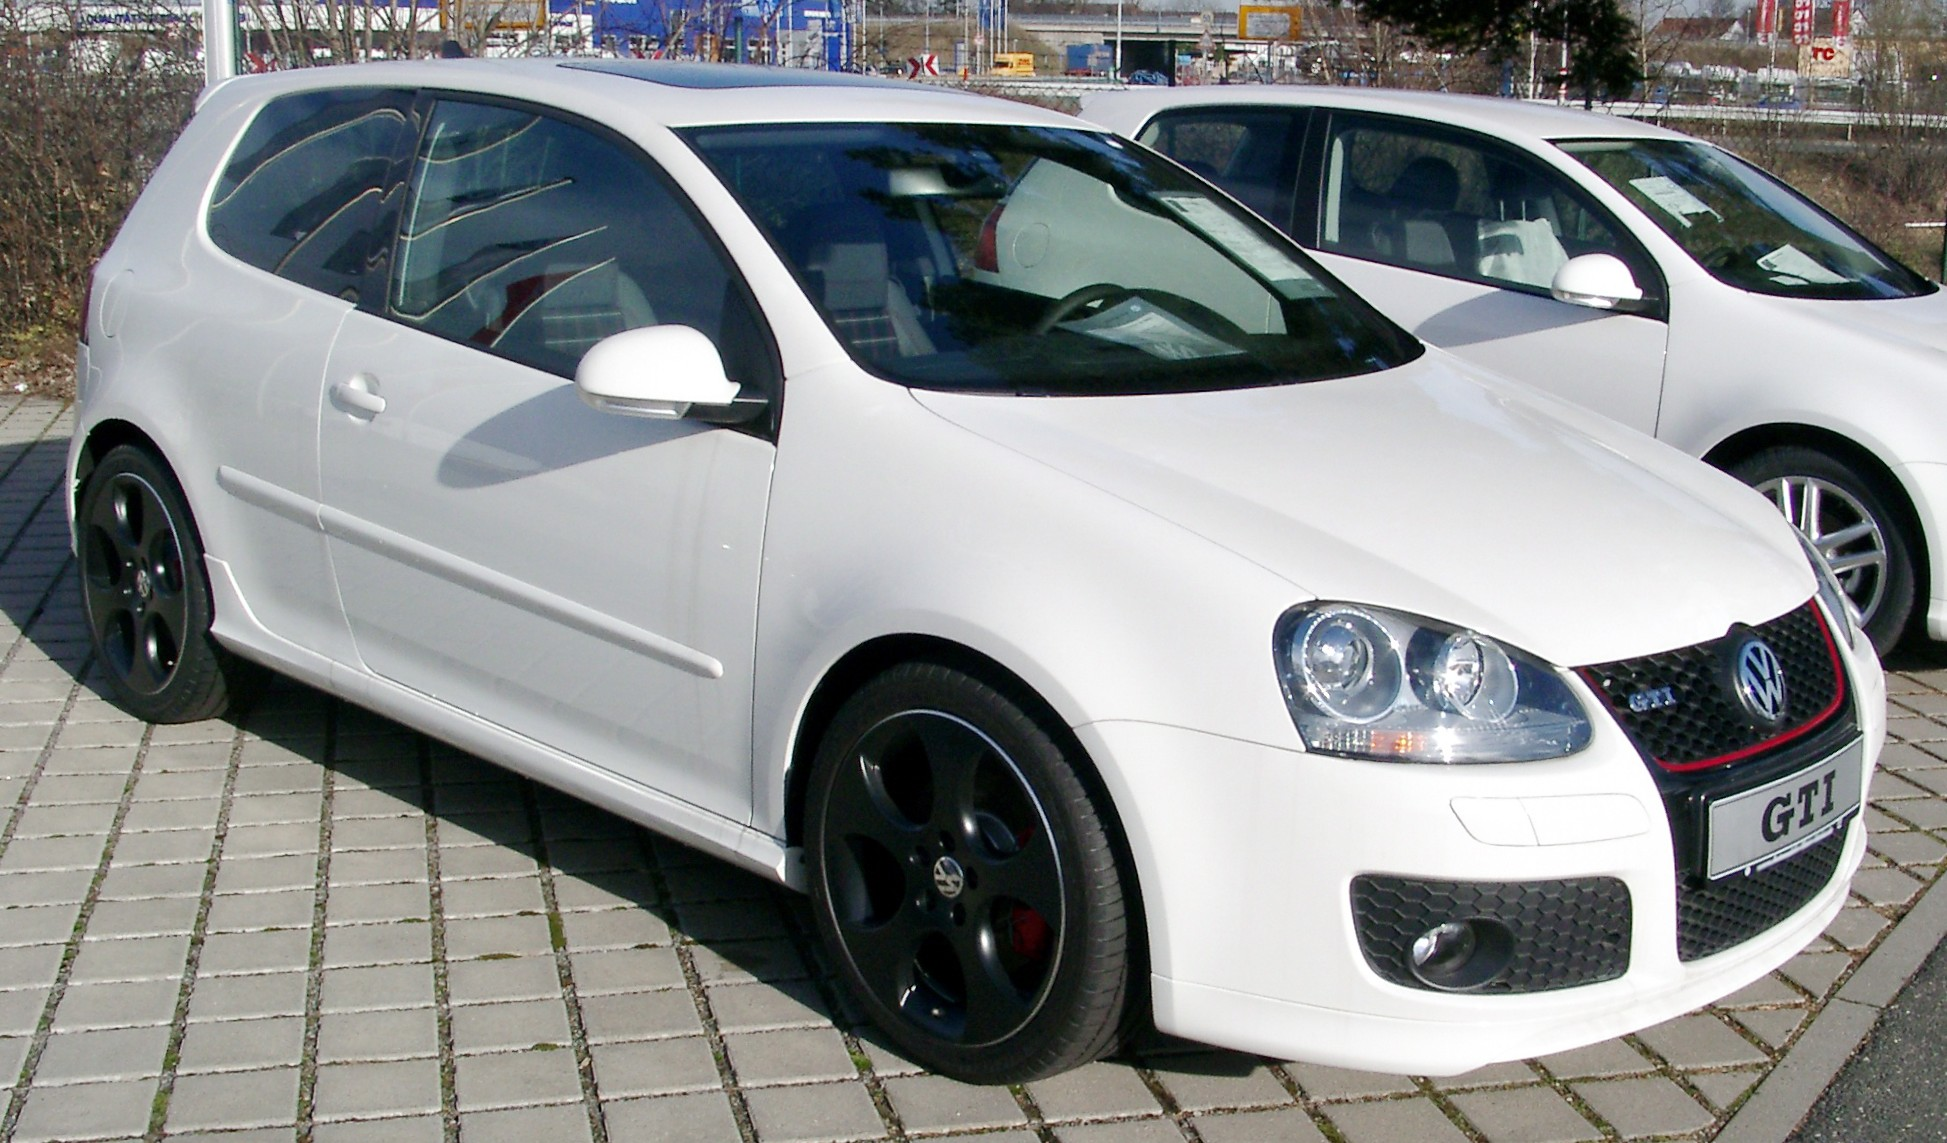 volkswagen golf v gti photos reviews news specs buy car. Black Bedroom Furniture Sets. Home Design Ideas